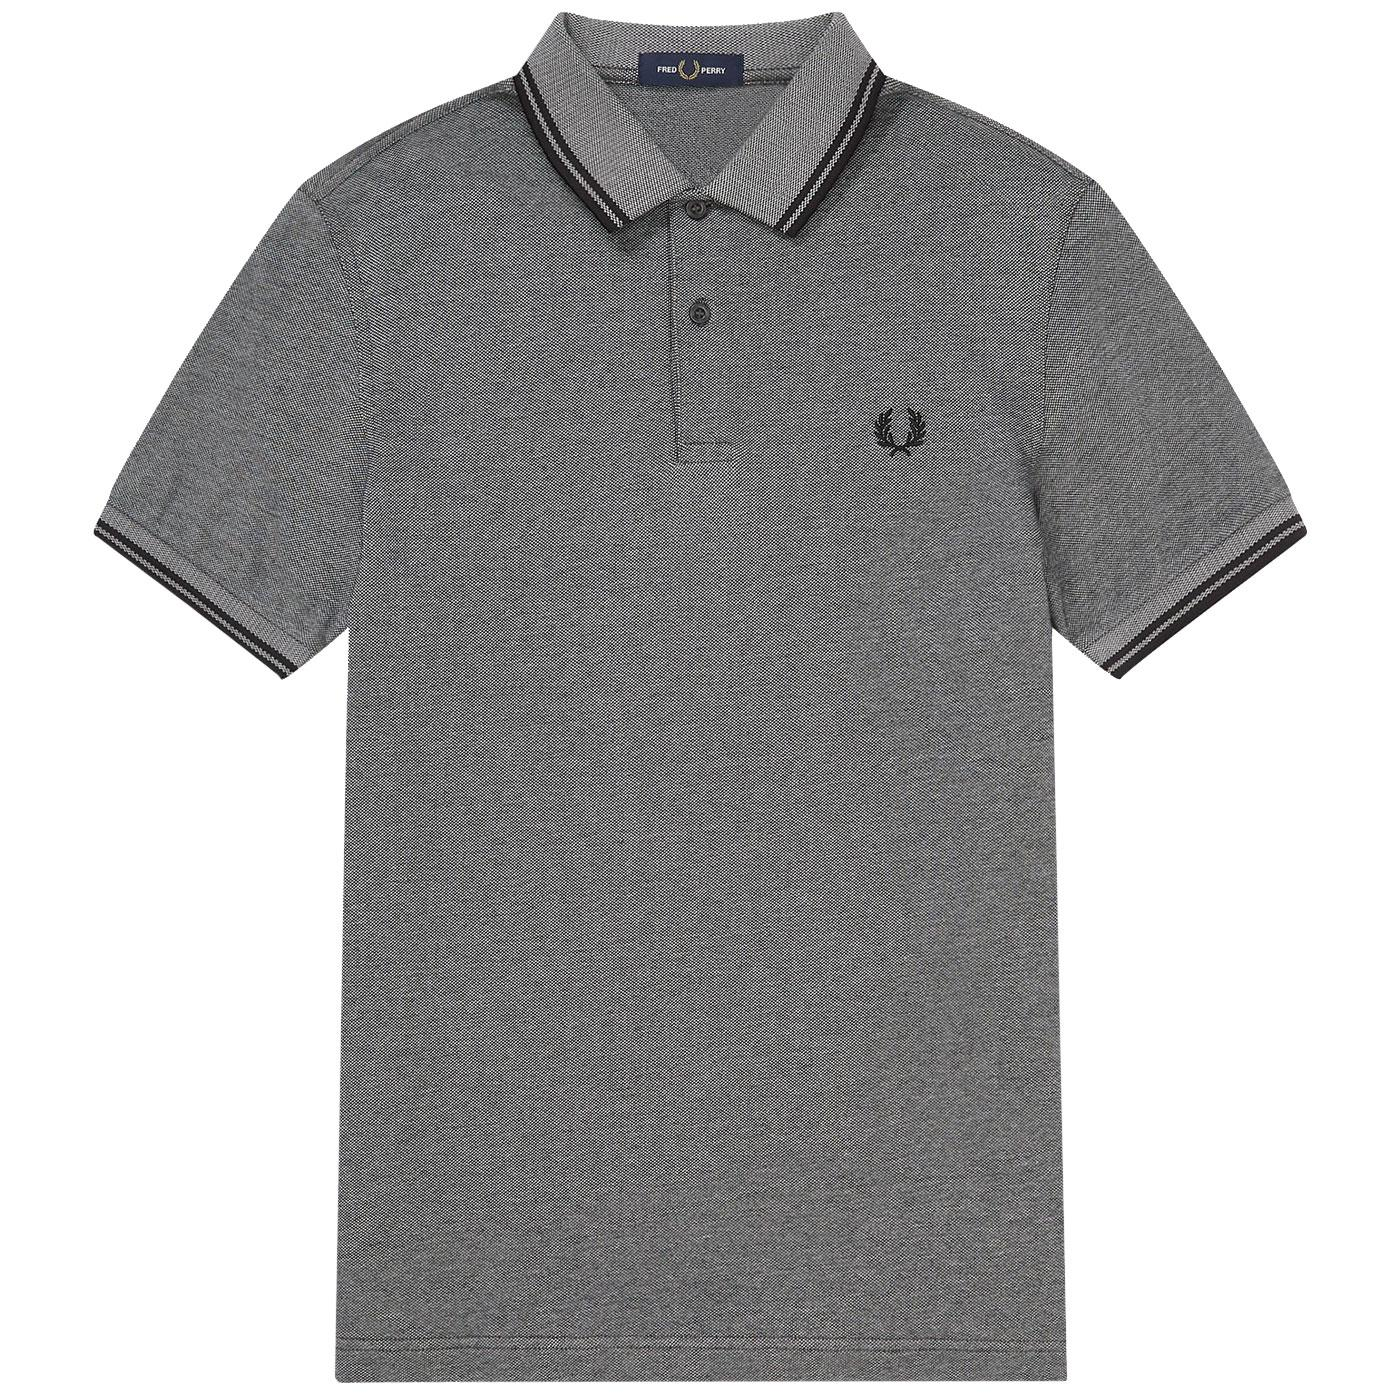 FRED PERRY M3600 Mod Twin Tipped Oxford Polo Shirt